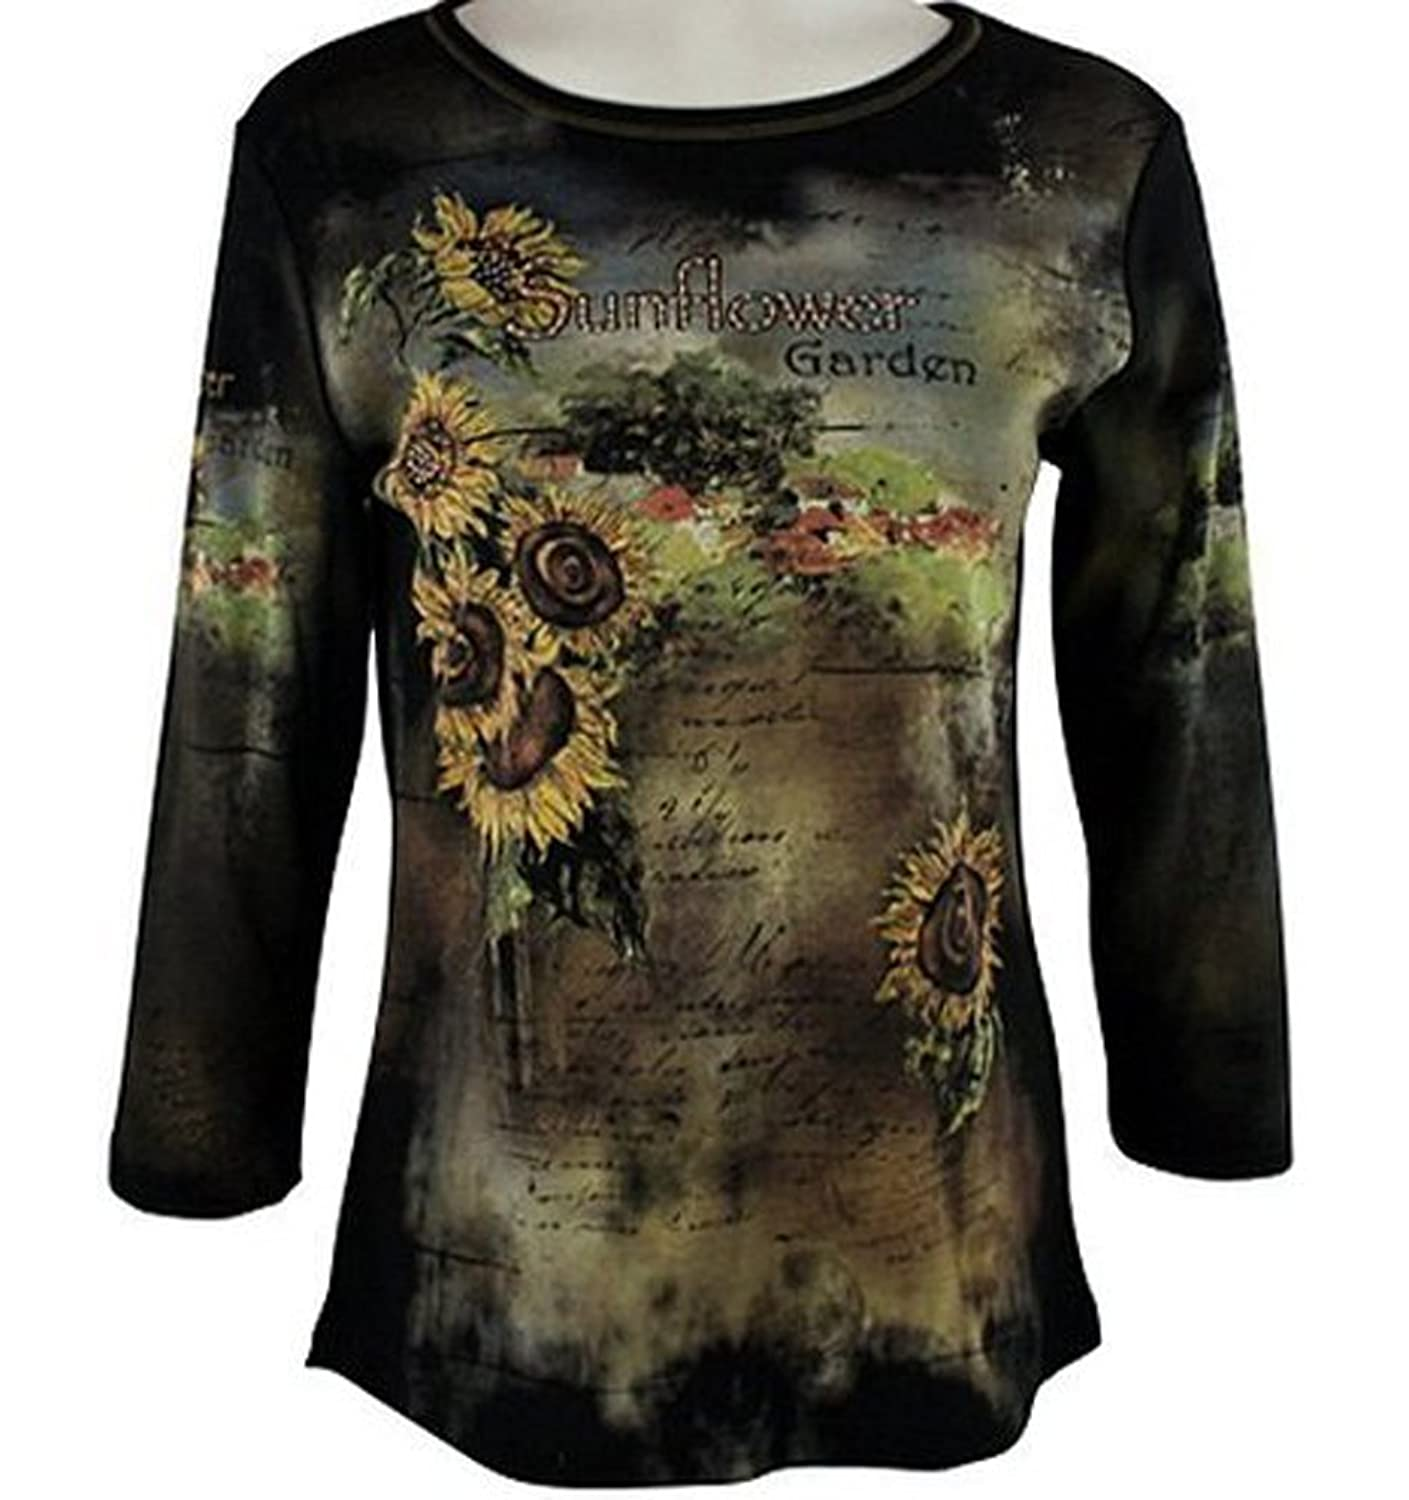 Cactus Fashion - Sunflower Field, Scoop Neck Cotton Print Rhinestone Top